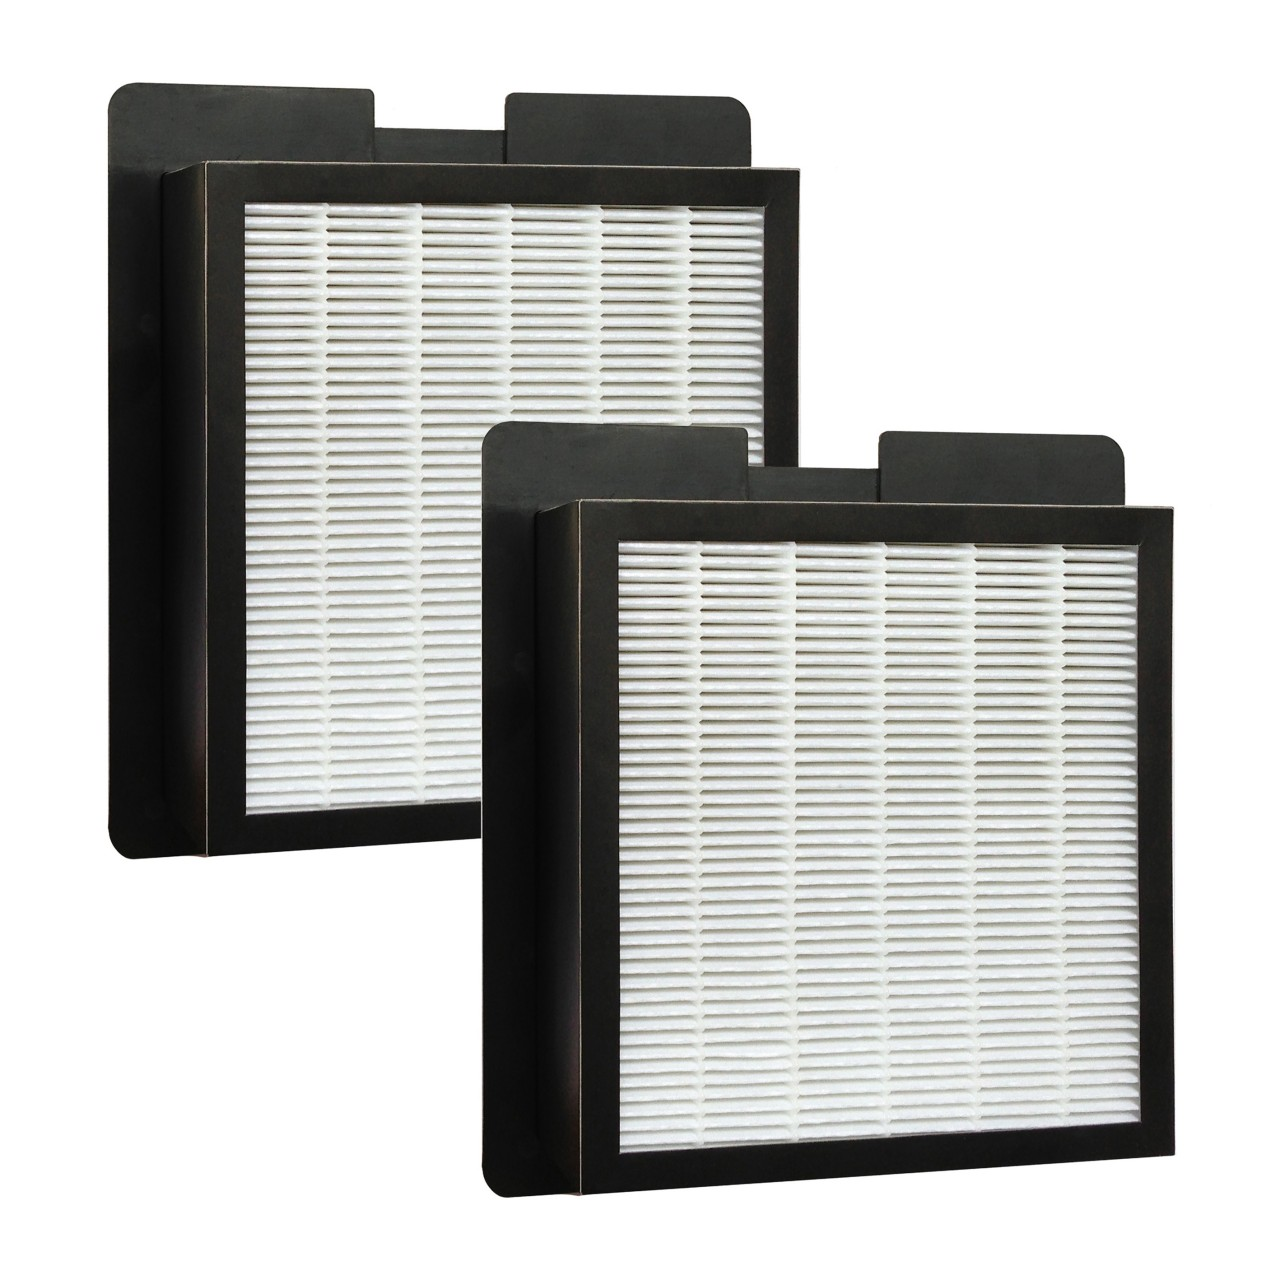 2 hepa filters for fresh air by ecoquest and xl 15 by